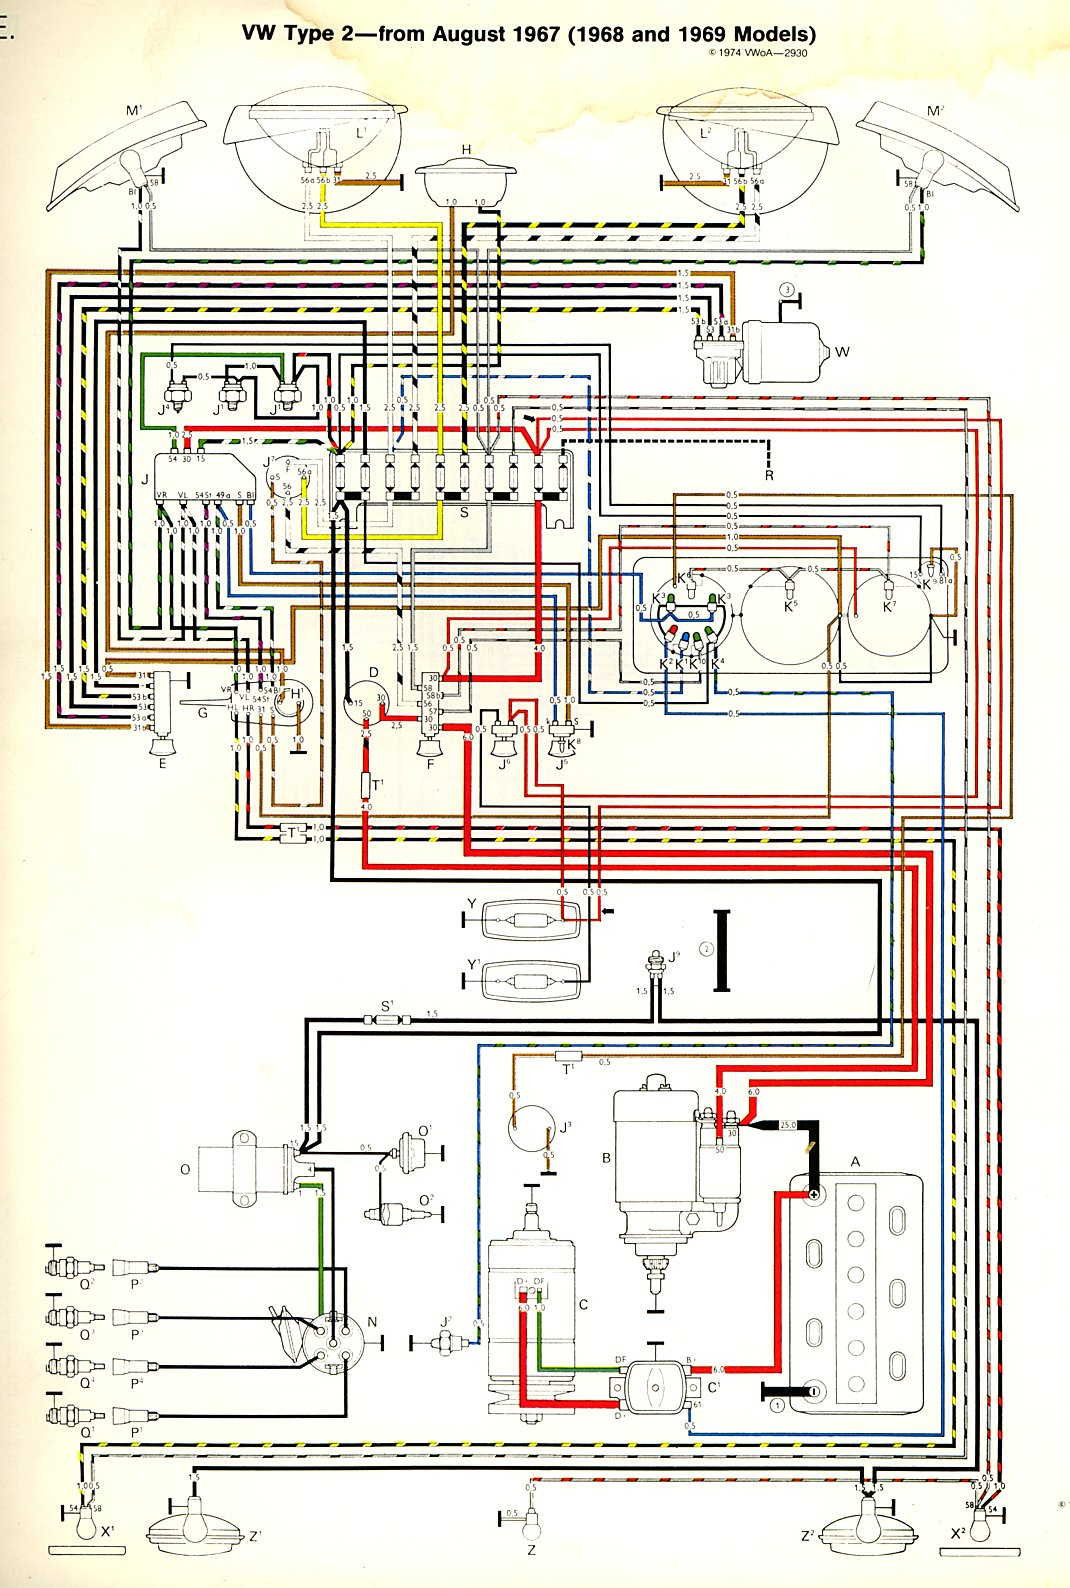 baybus_6869a 1968 69 bus wiring diagram thegoldenbug com find wiring diagram for 87 ford f 150 at soozxer.org